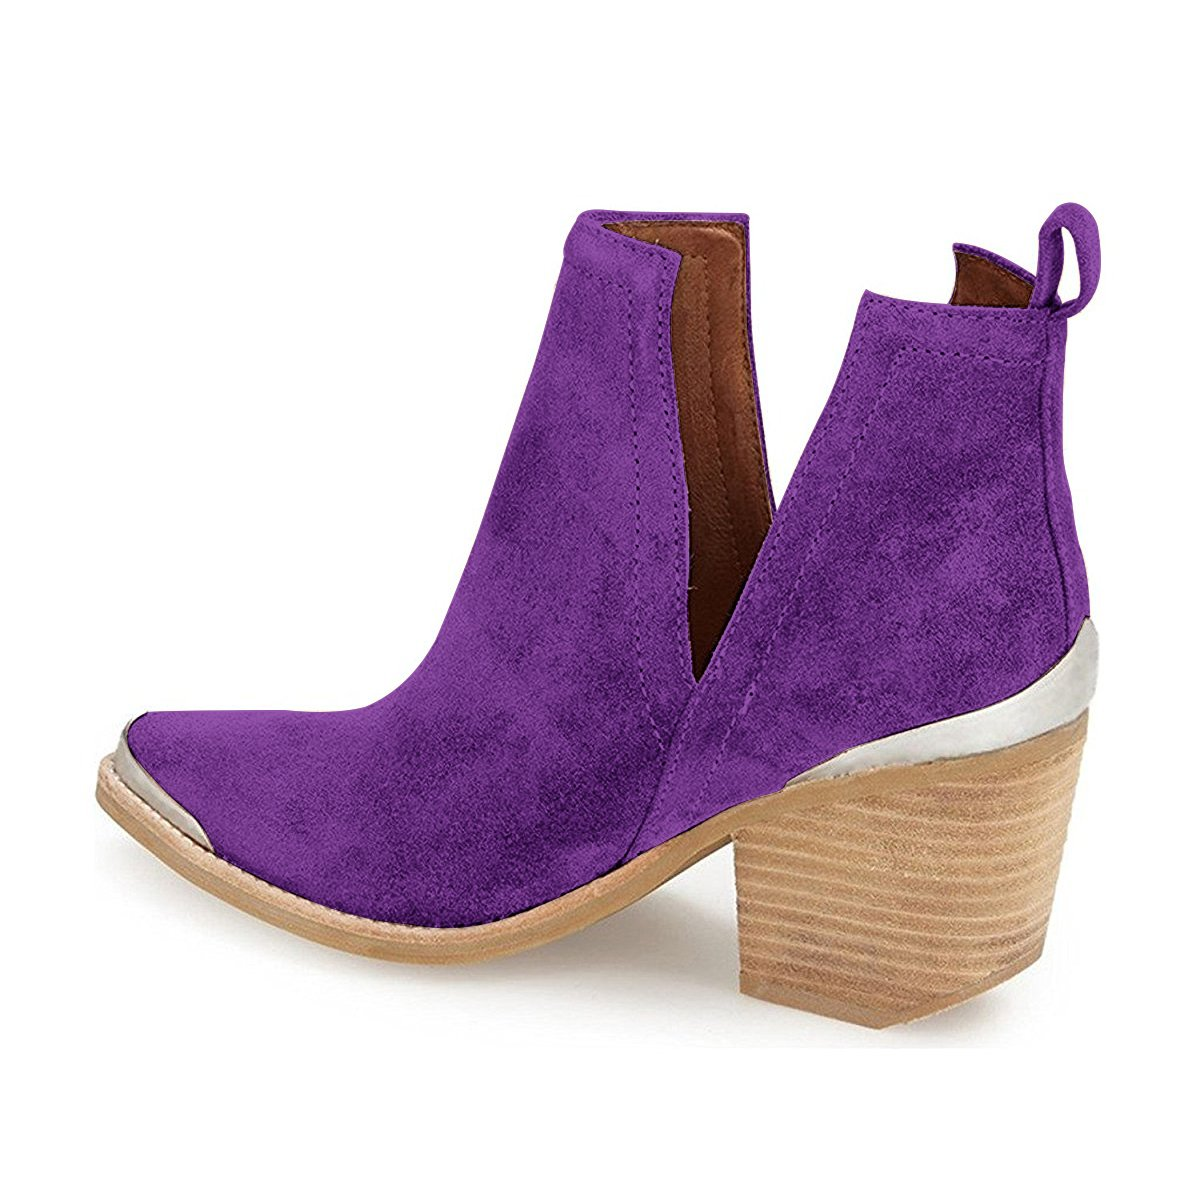 YDN Women Ankle Booties Low Heel Faux Suede Stacked Boots Cut Out Shoes with Metal Toe B01N015RUA 15 M US|Purple